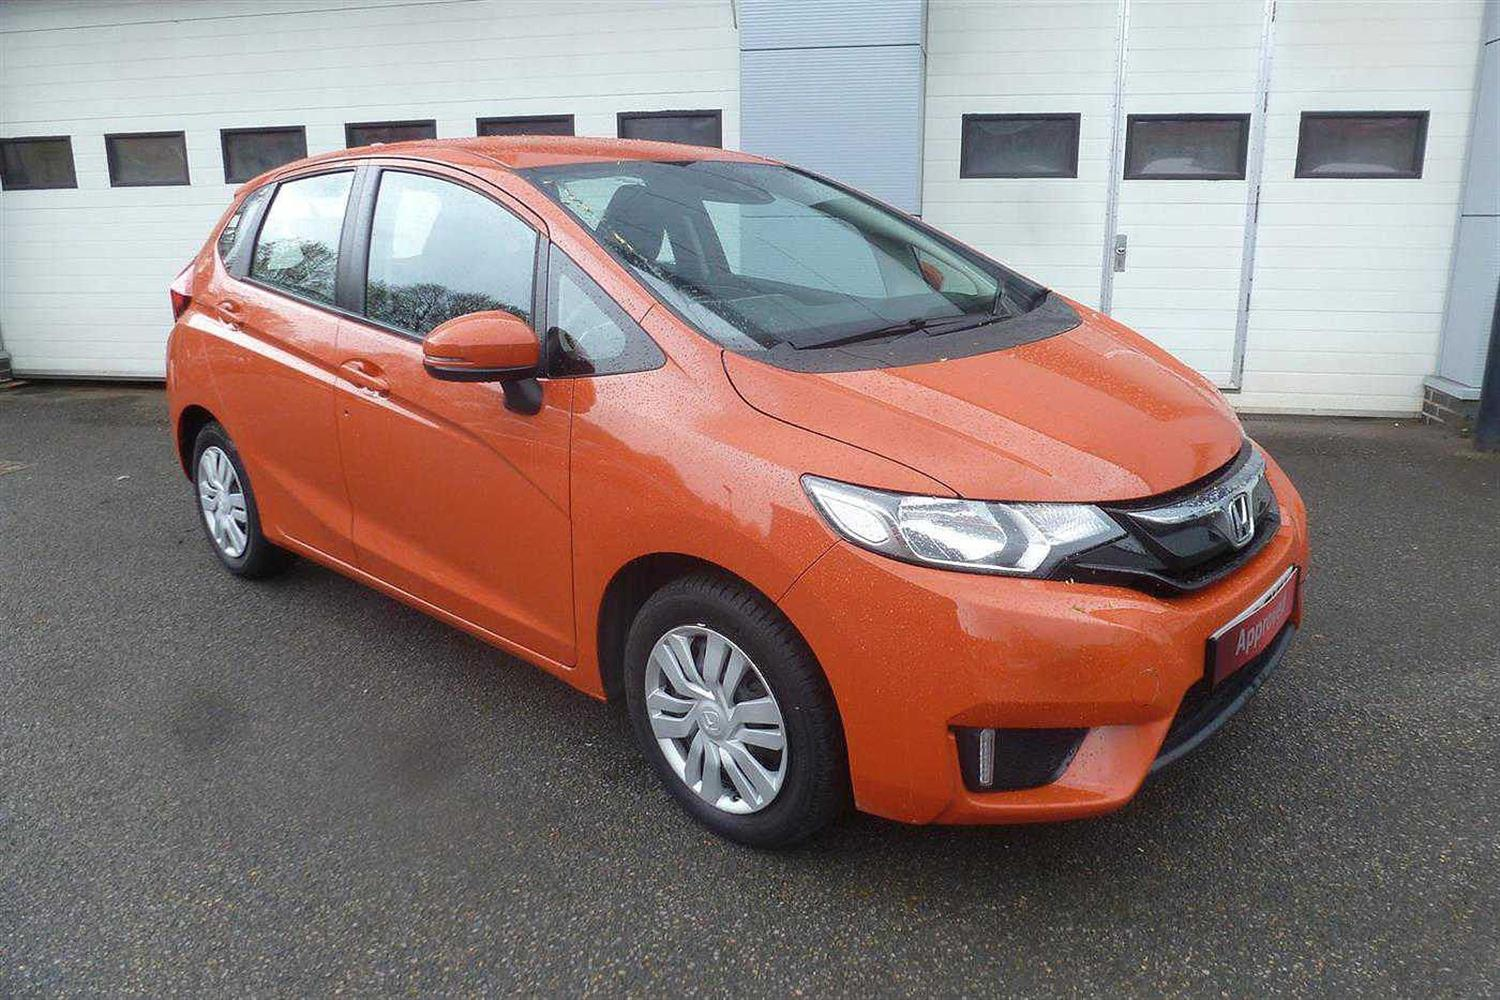 Honda Jazz 1.3 i-VTEC S Hatchback Petrol Sunset Orange II